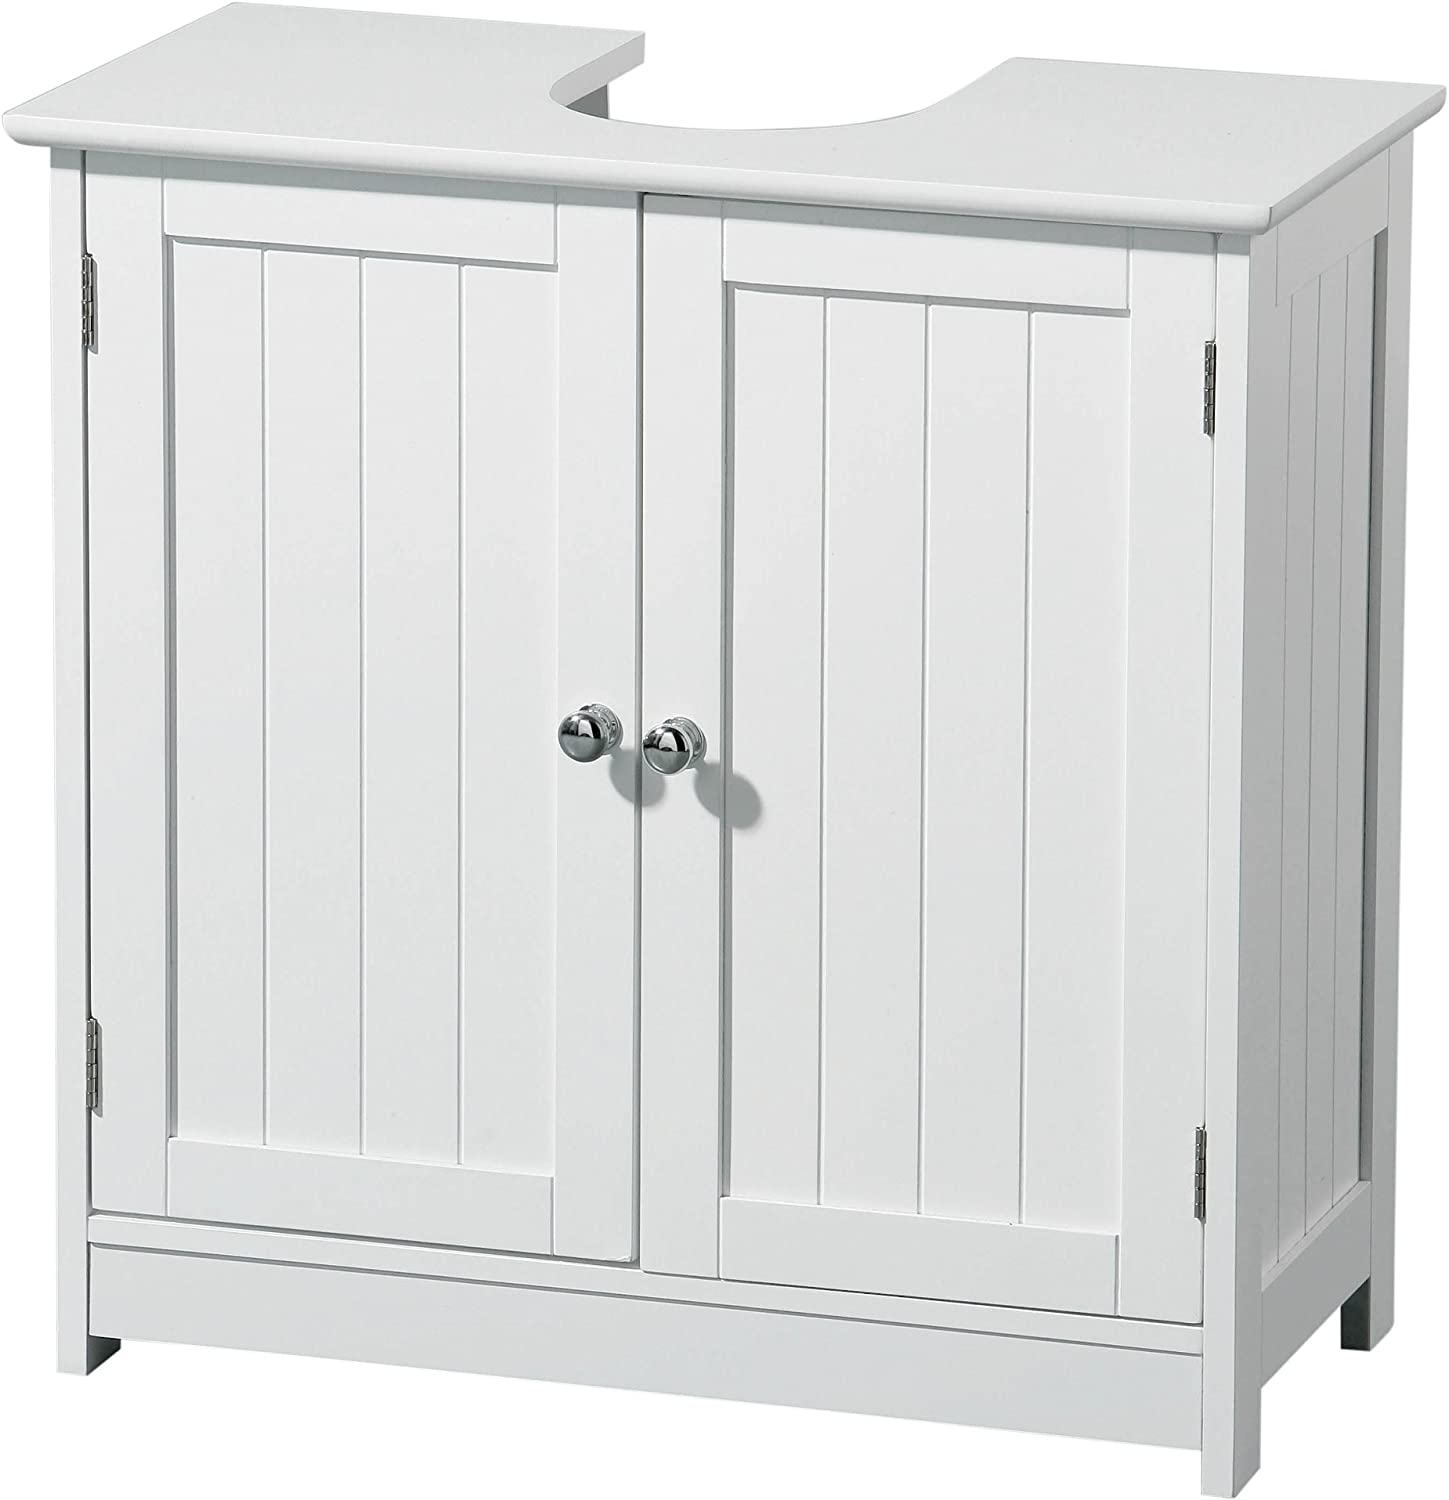 Premier Housewares Portland Under Sink Cabinet - White